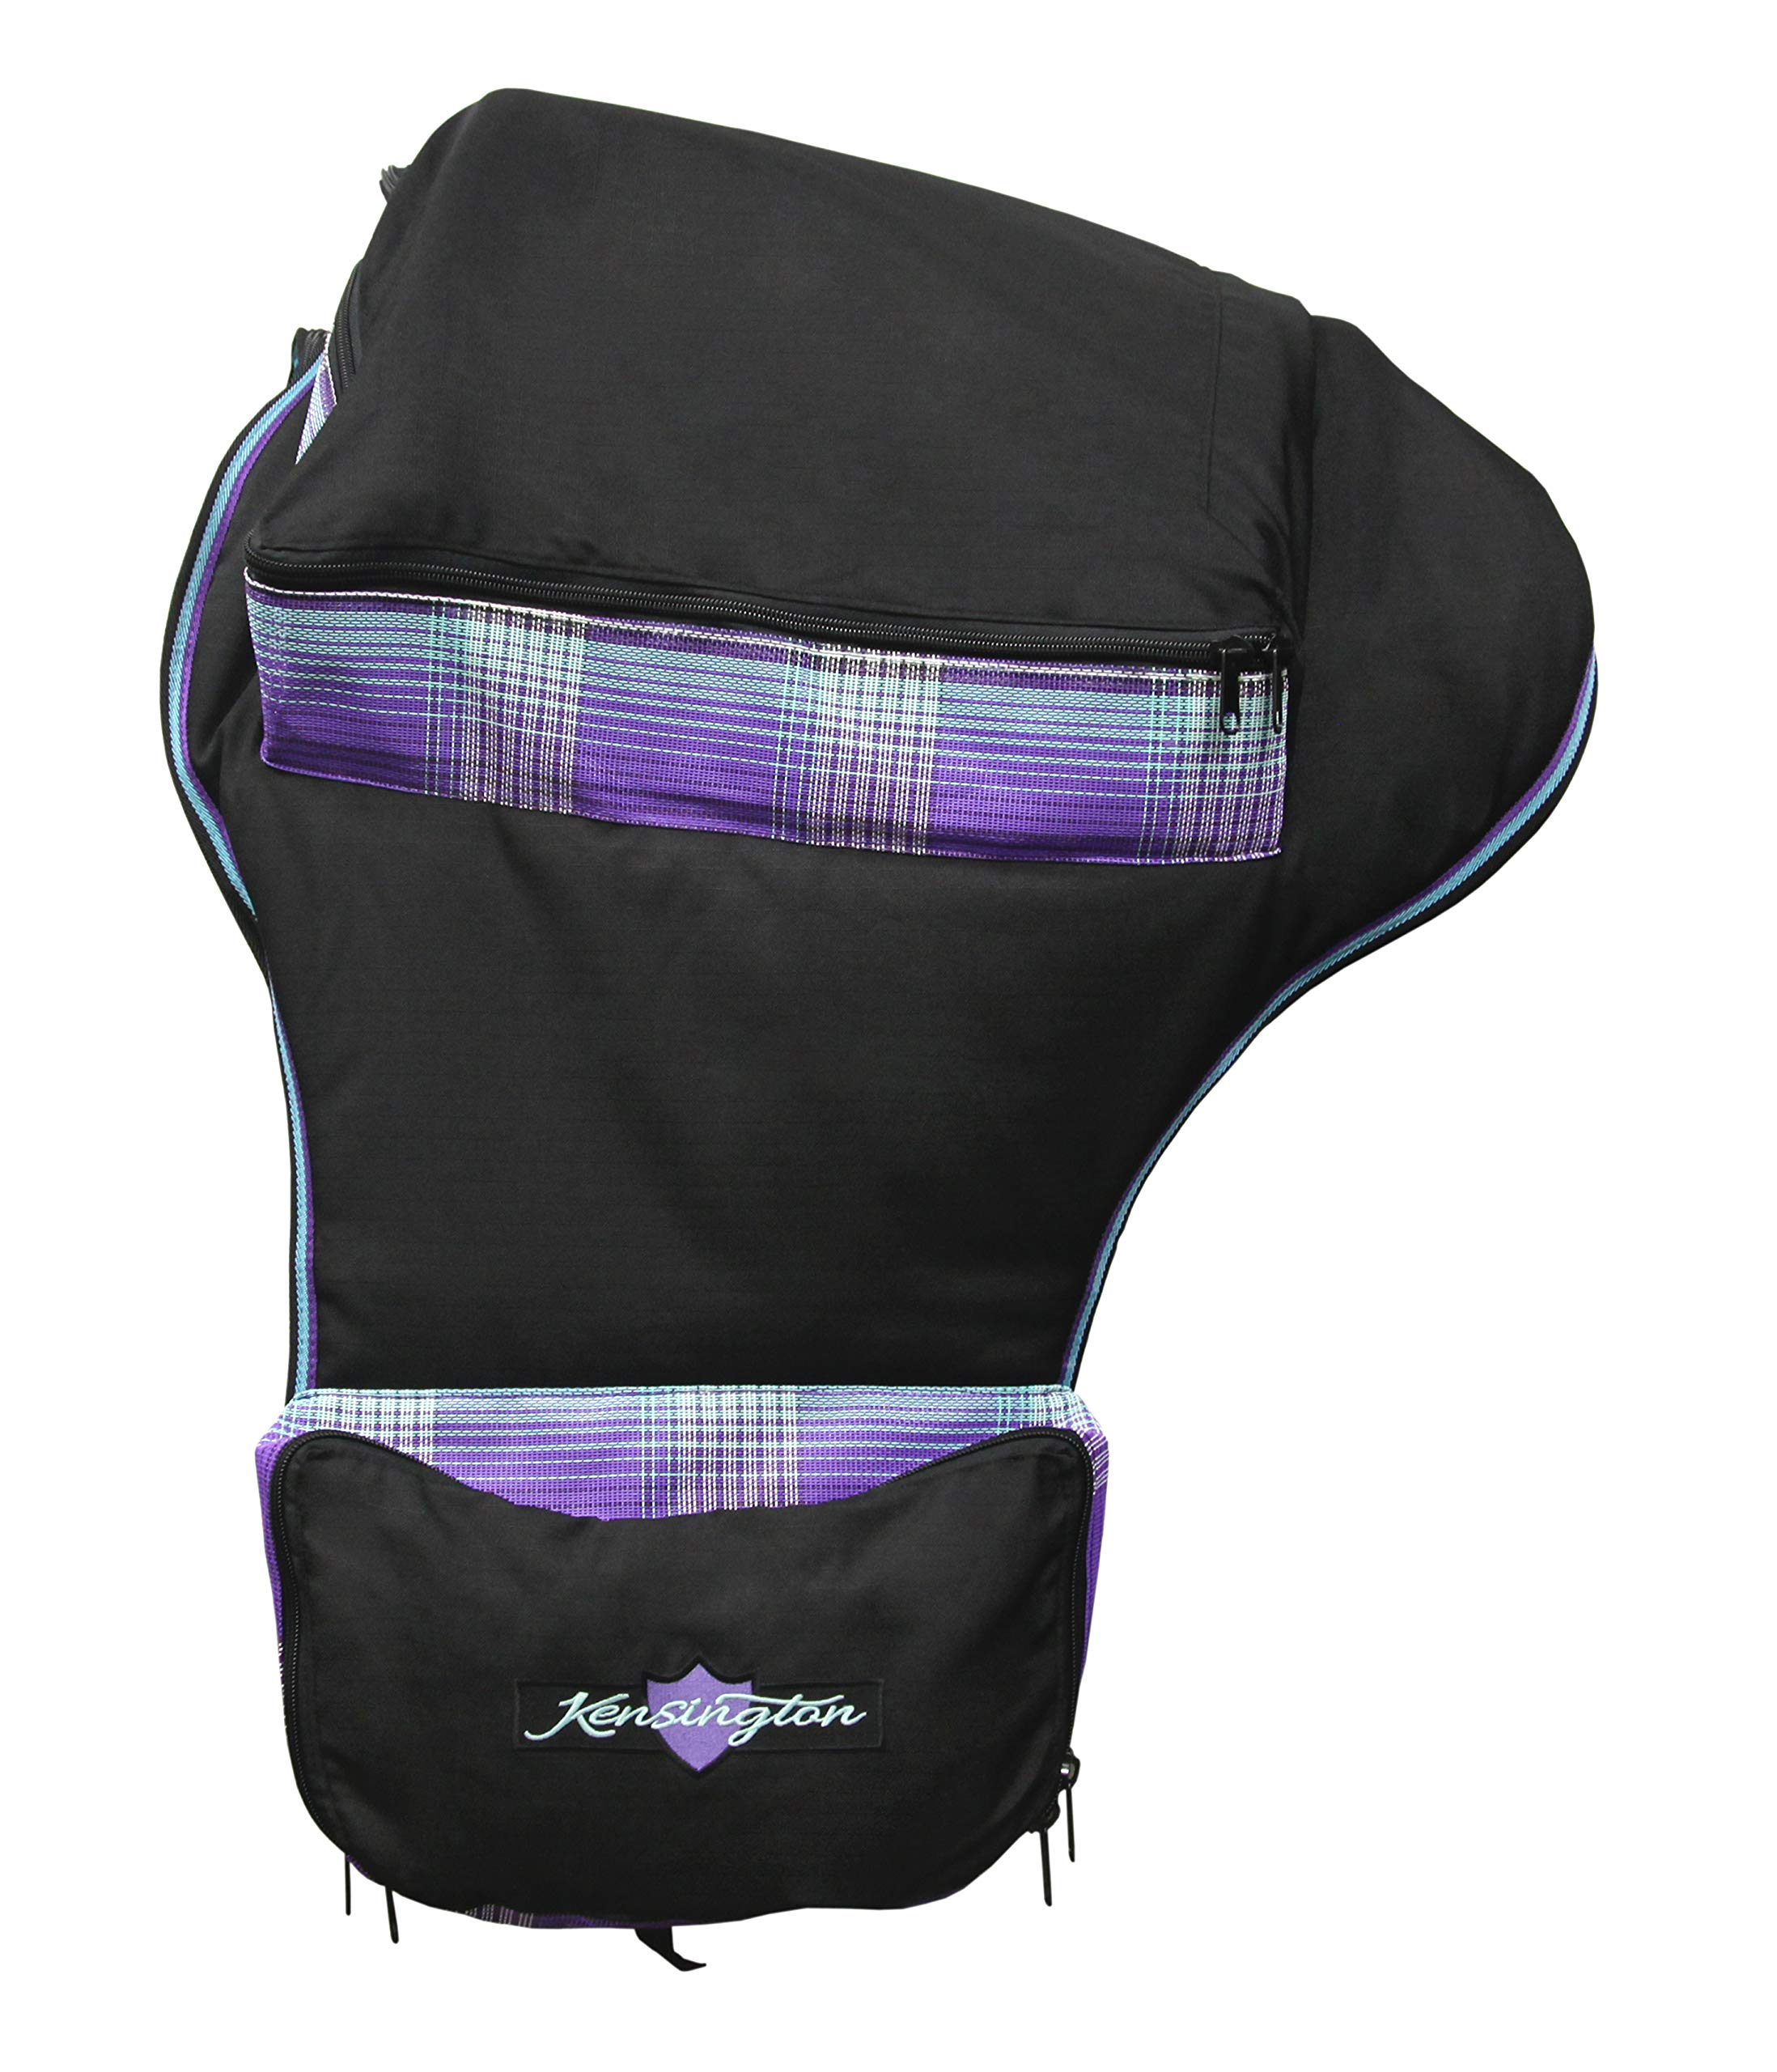 Kensington Signature Western Saddle Carry Bag - Protection for Biggest of Saddles, Extra Side Pockets, A Large Pocket on Top for Storage, Mesh Allows Airflow, Prevents Mold Mildew, Lavender Mint Plaid